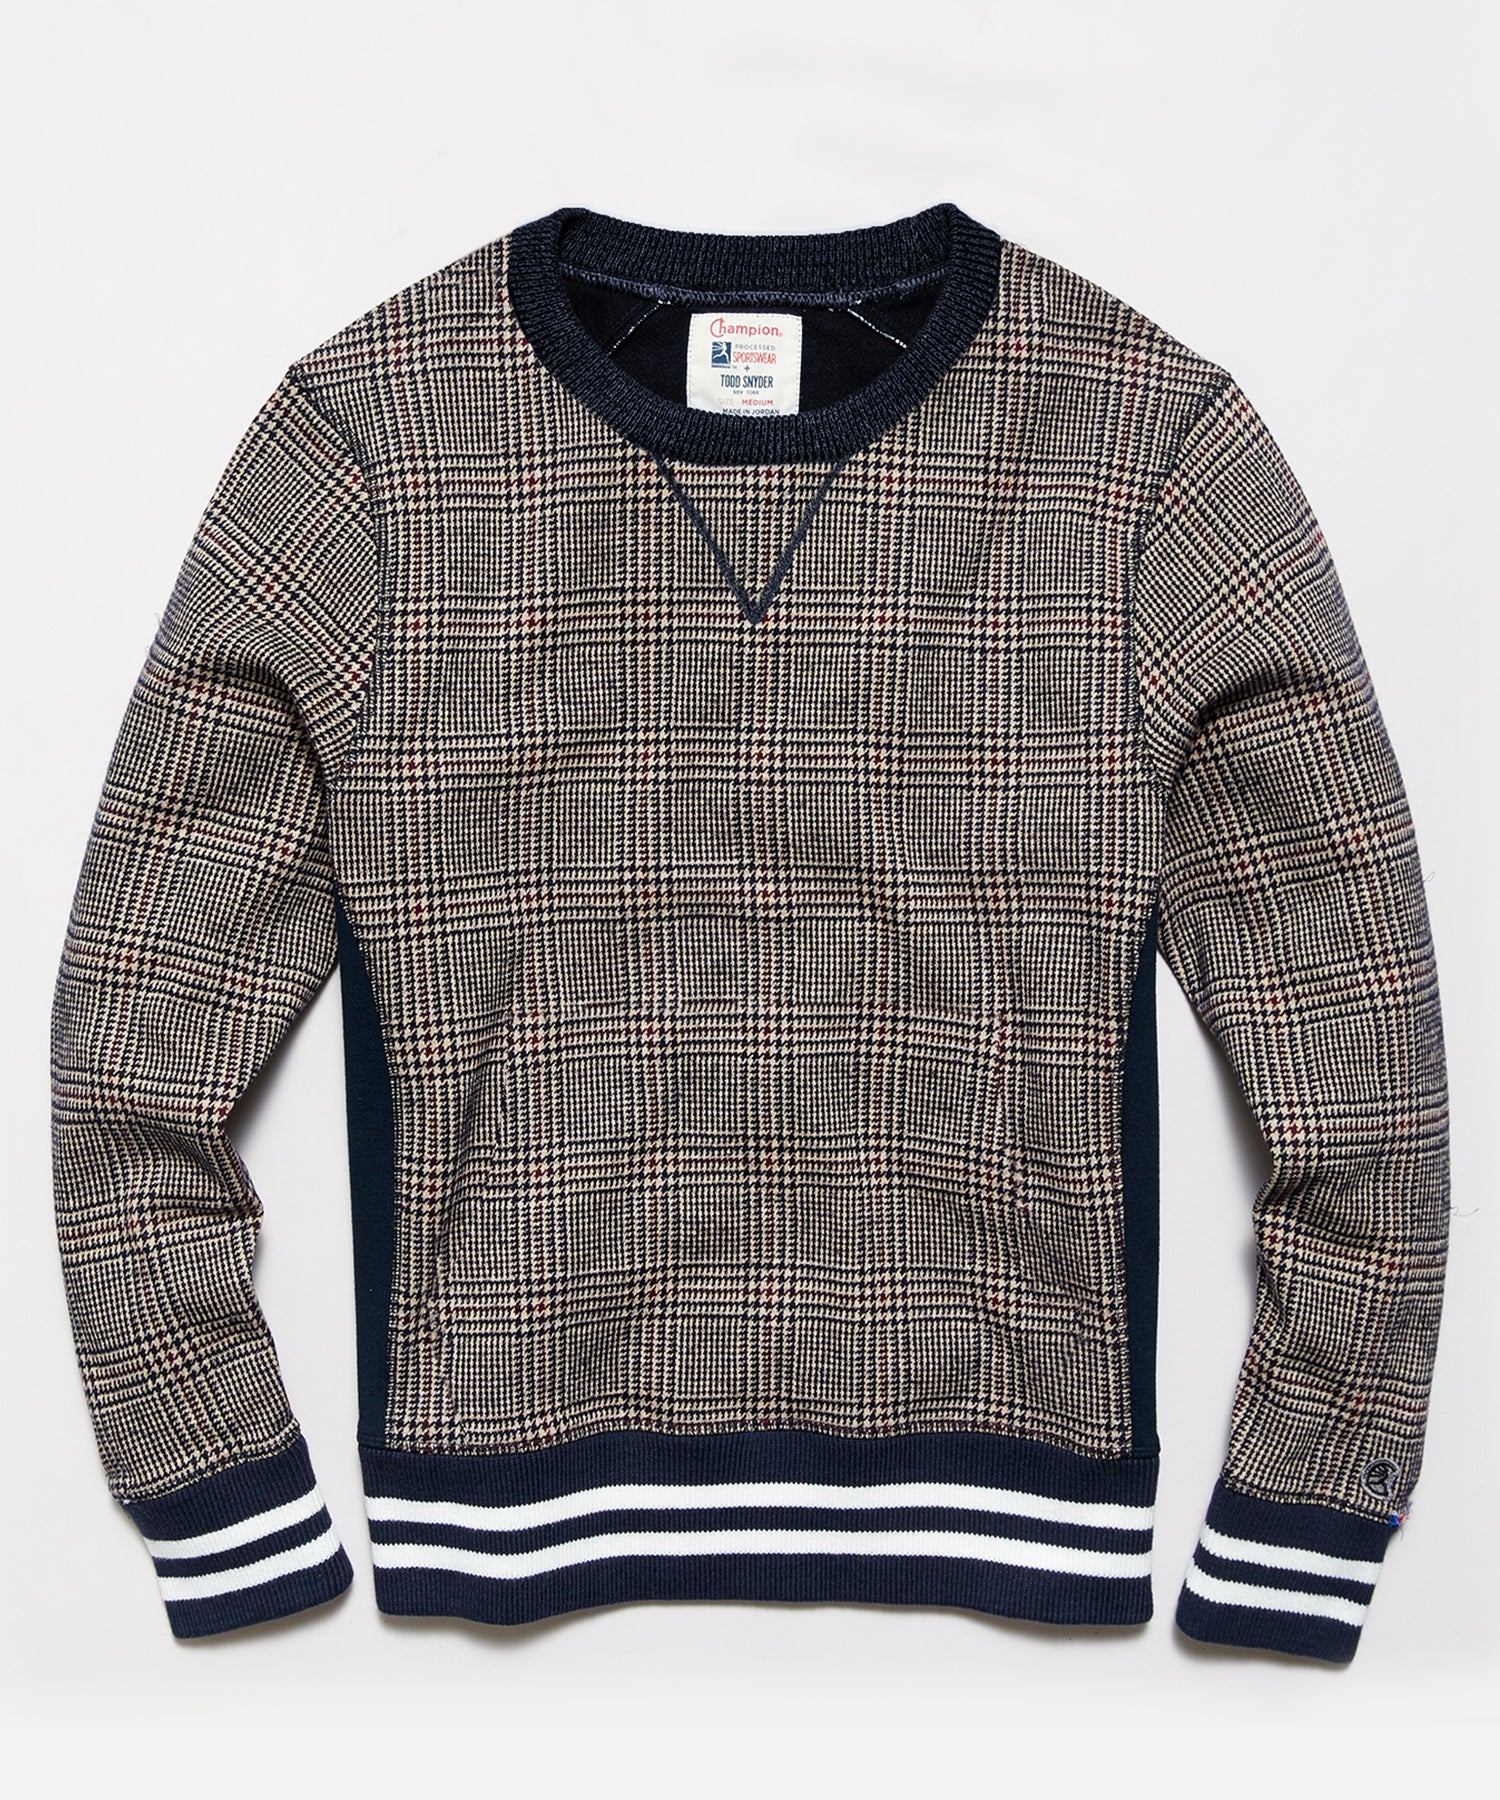 Glenplaid Wool Crew Sweatshirt